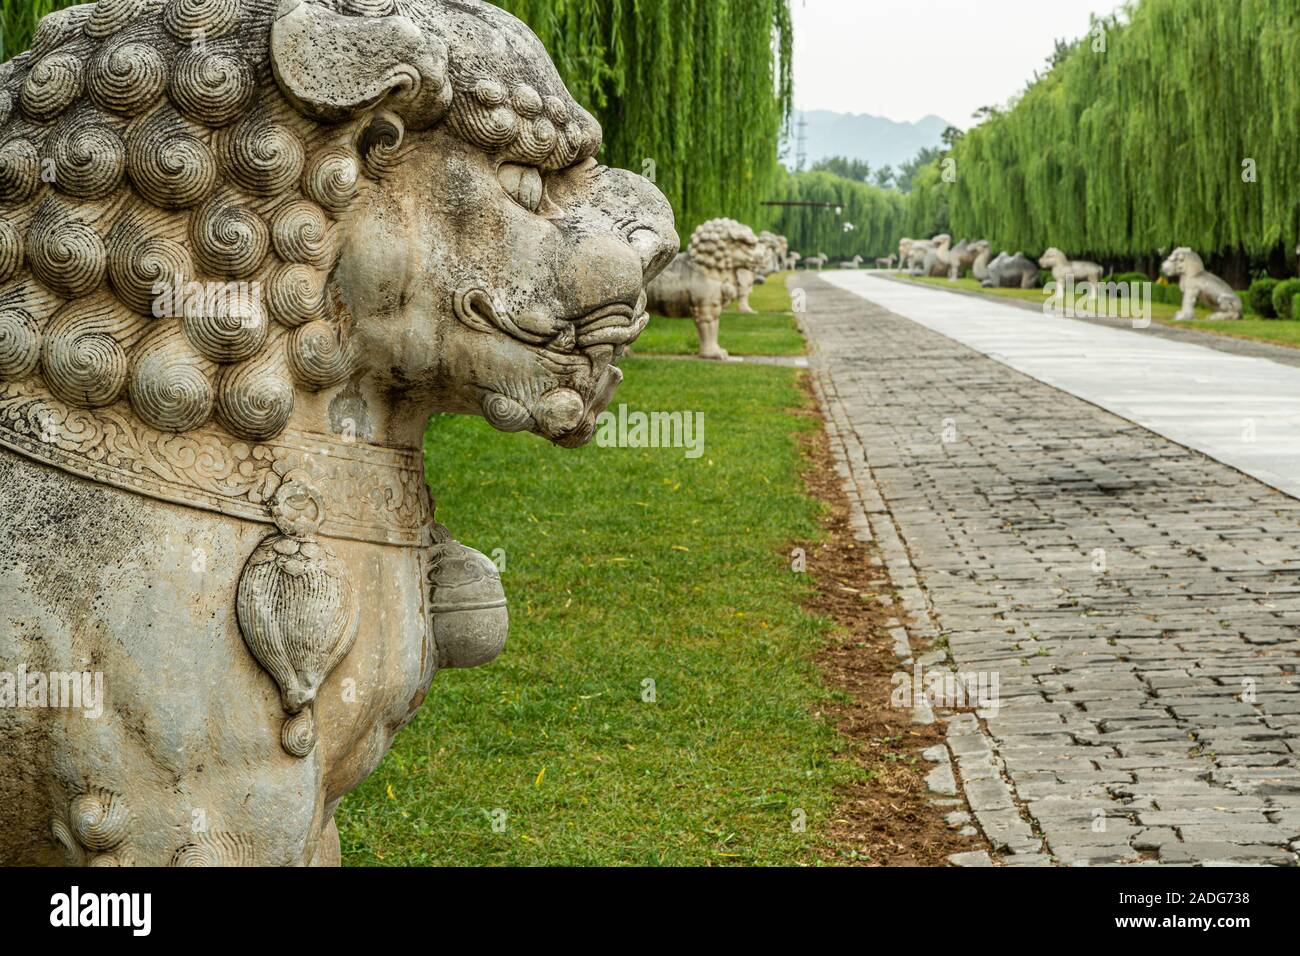 The Sacred Way, is a main road leading to all the tombs of the Imperial Tombs of the Ming and Qing Dynasties with stone sculptures, Beijing China Stock Photo